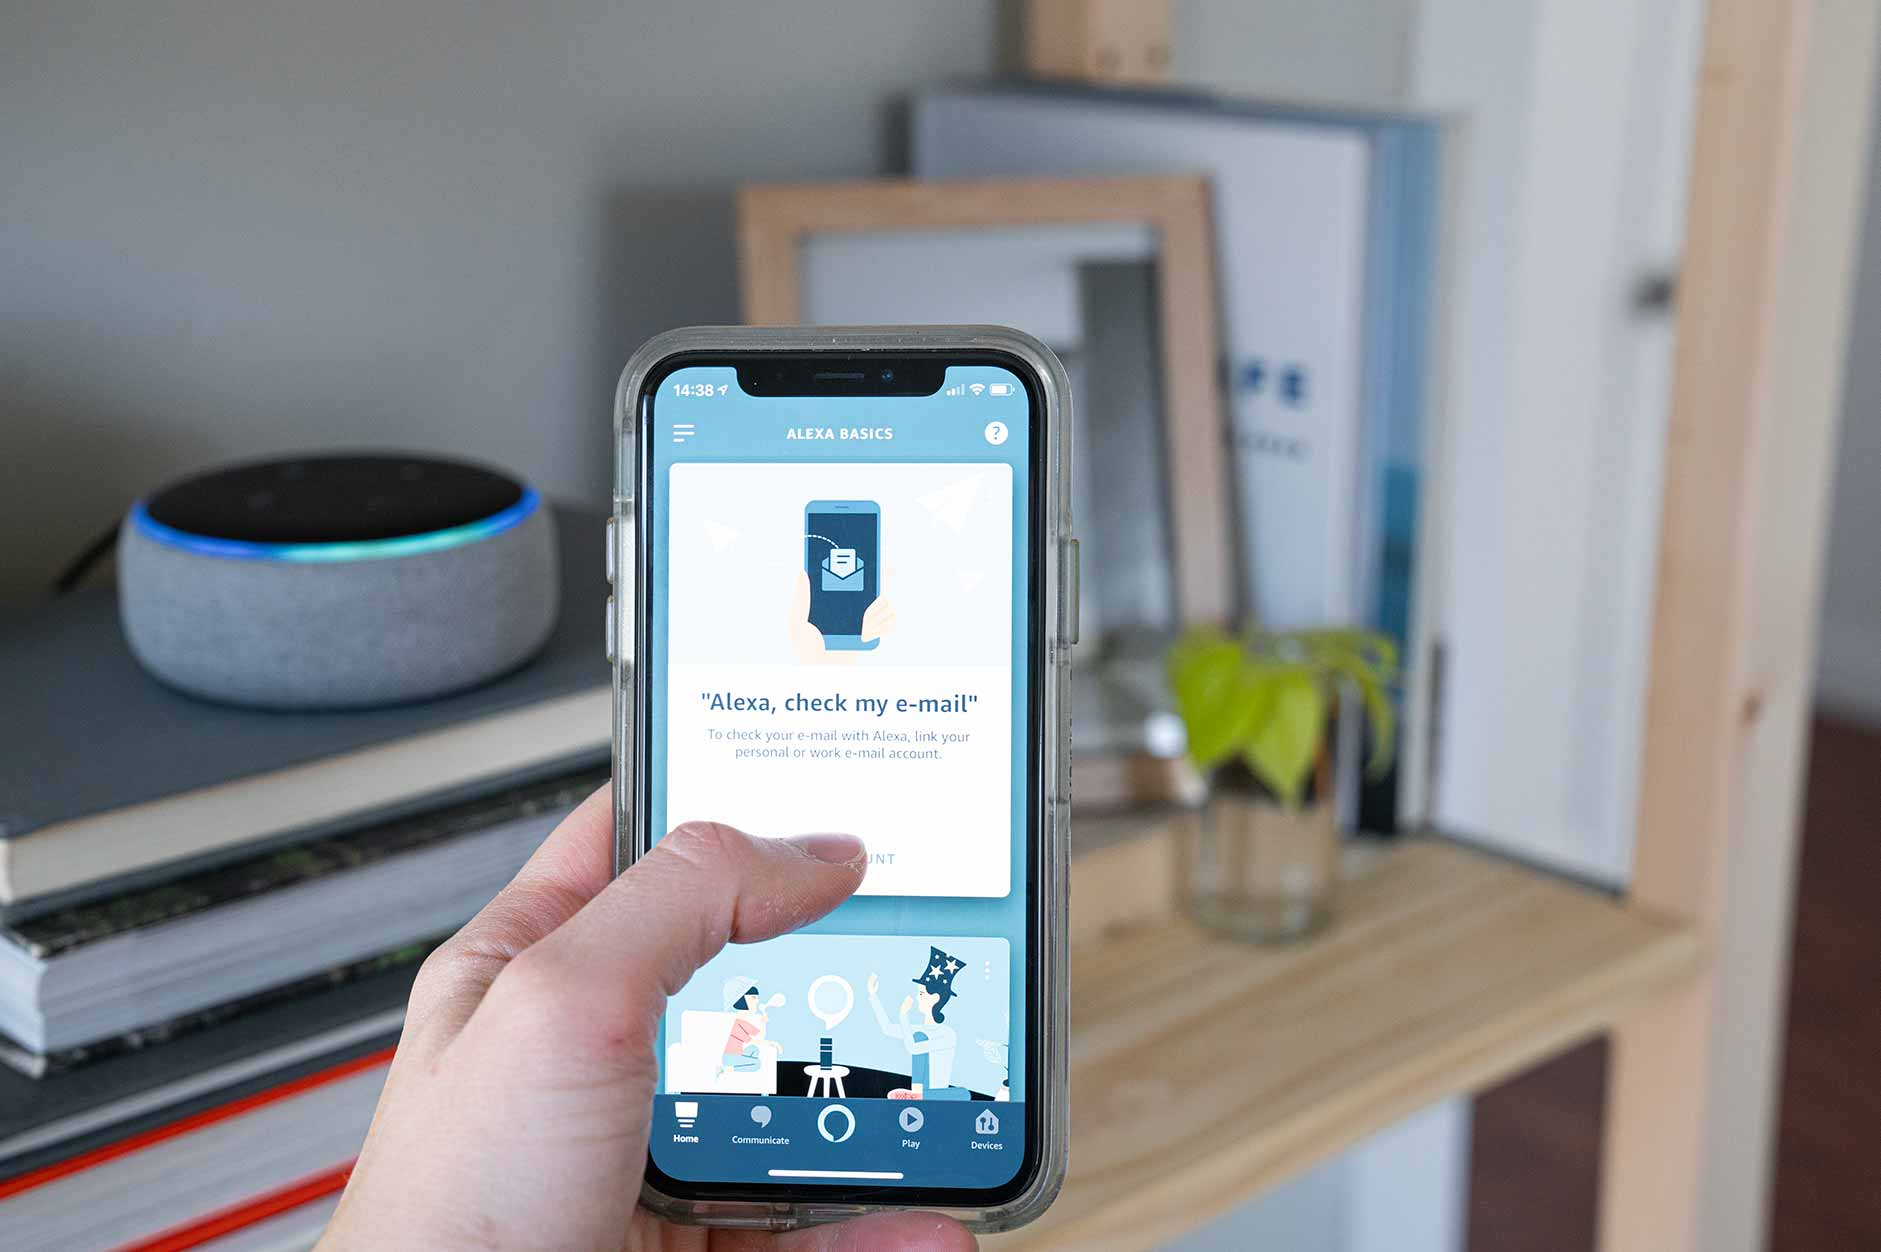 Checking email with Amazon Echo